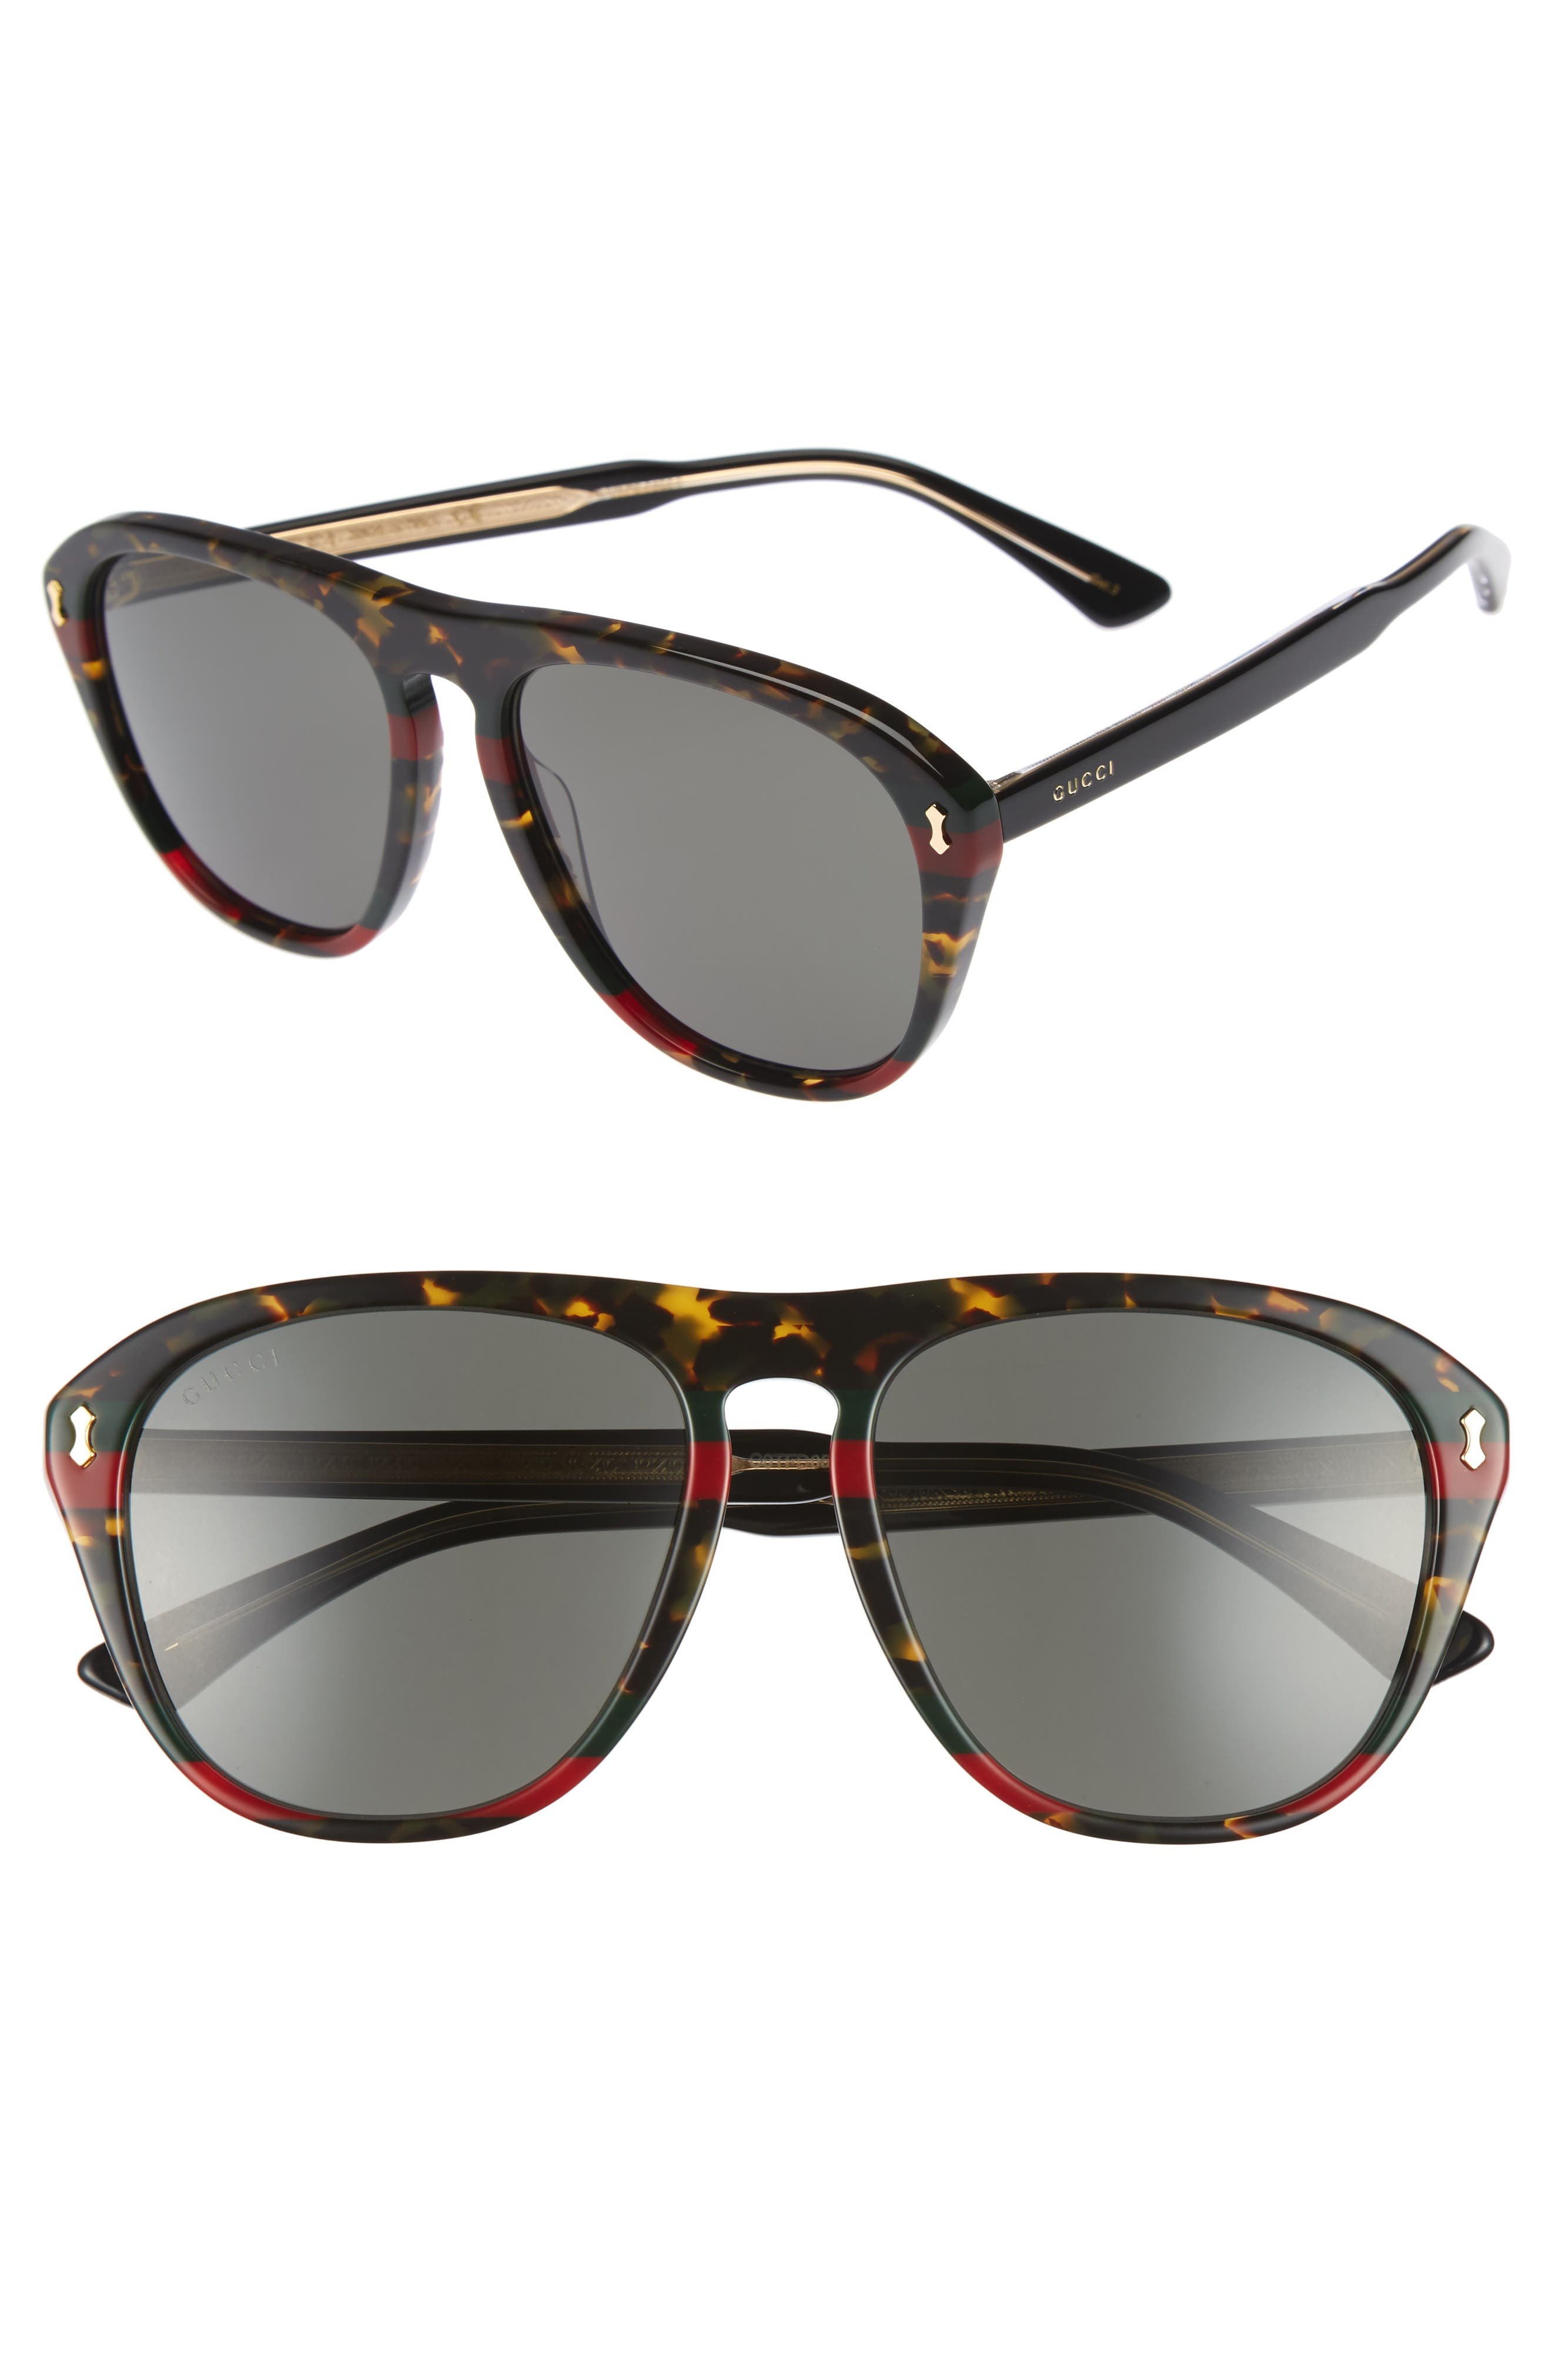 Alternate Image 1 Selected - Gucci 56mm Sunglasses